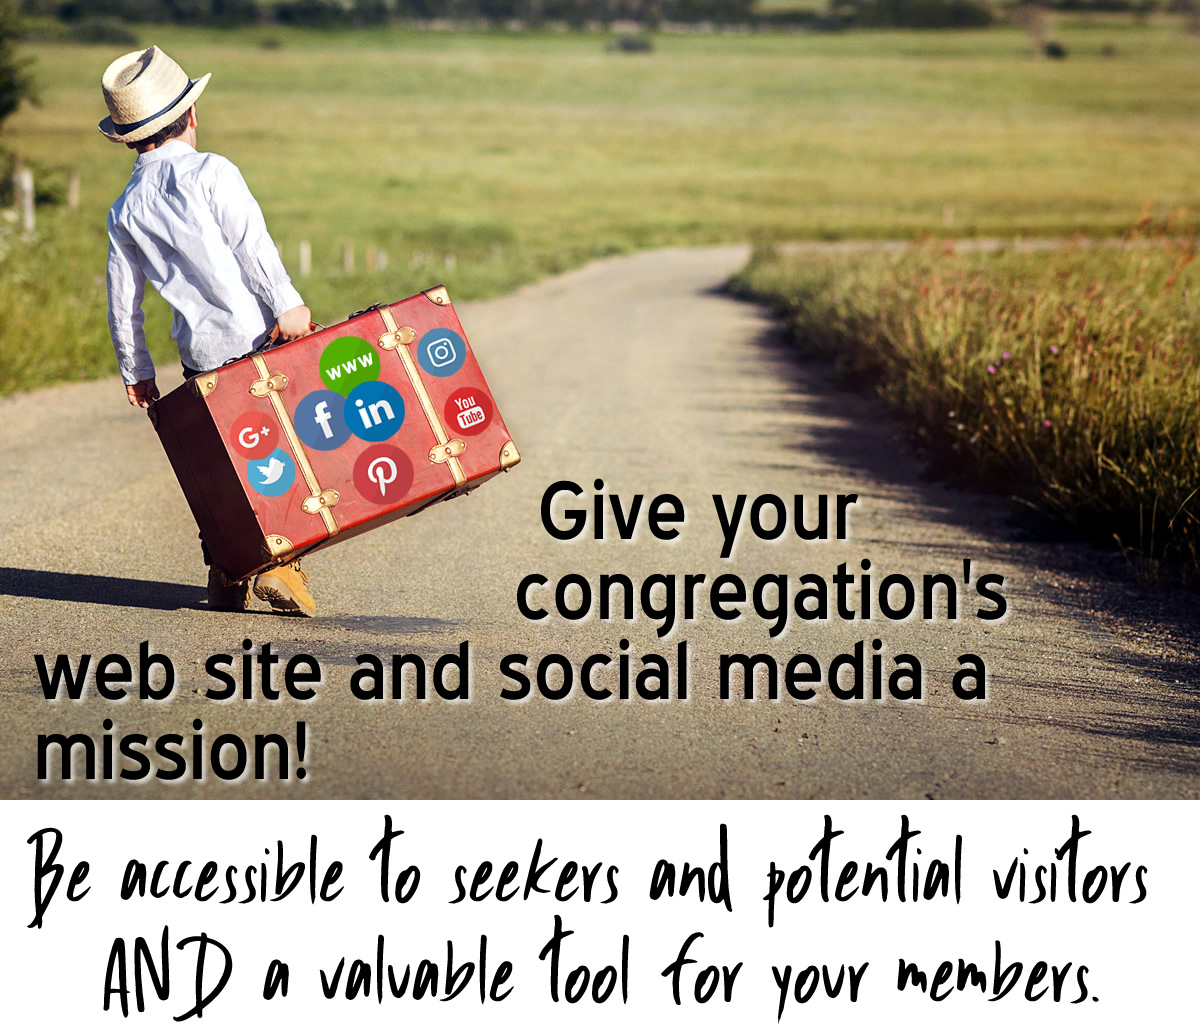 Give your congregation's 